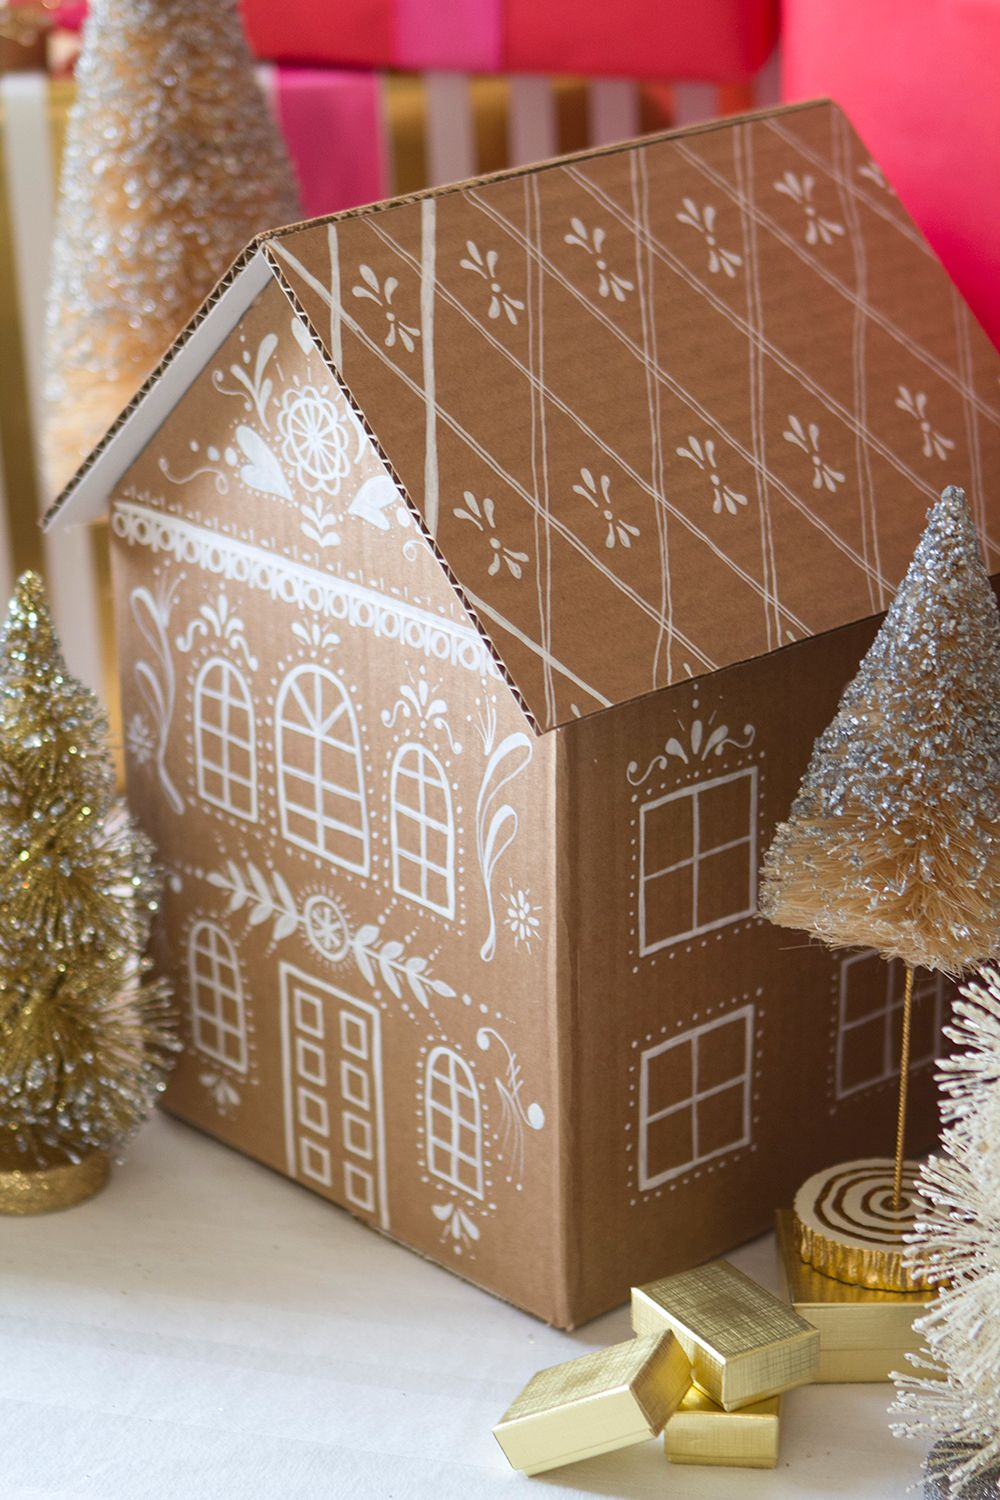 Diy Gingerbread House Gift Boxes Geschenk Haus Diy Ideen